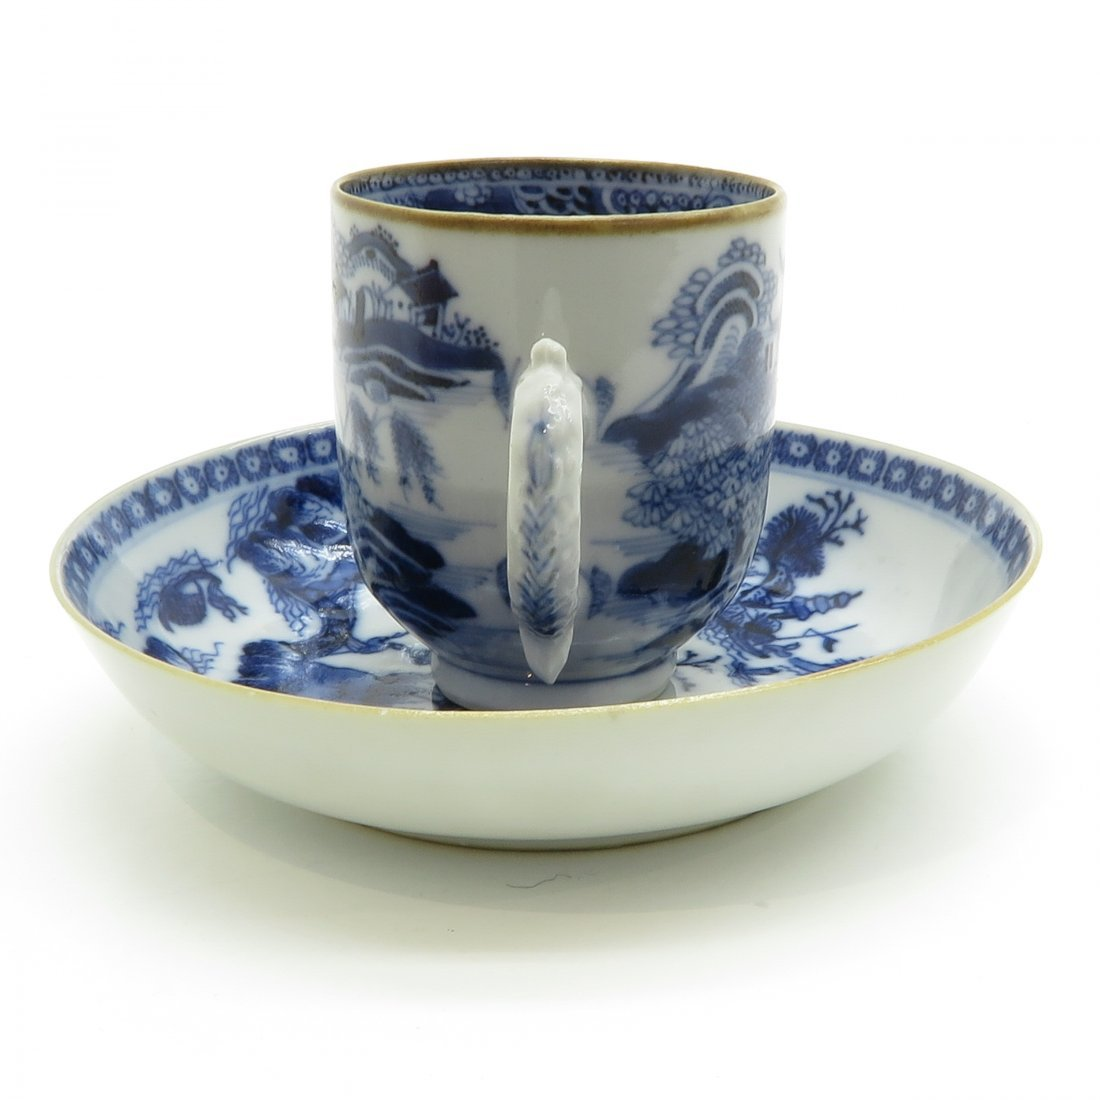 China Porcelain Cup and Saucer Circa 1800 - 2